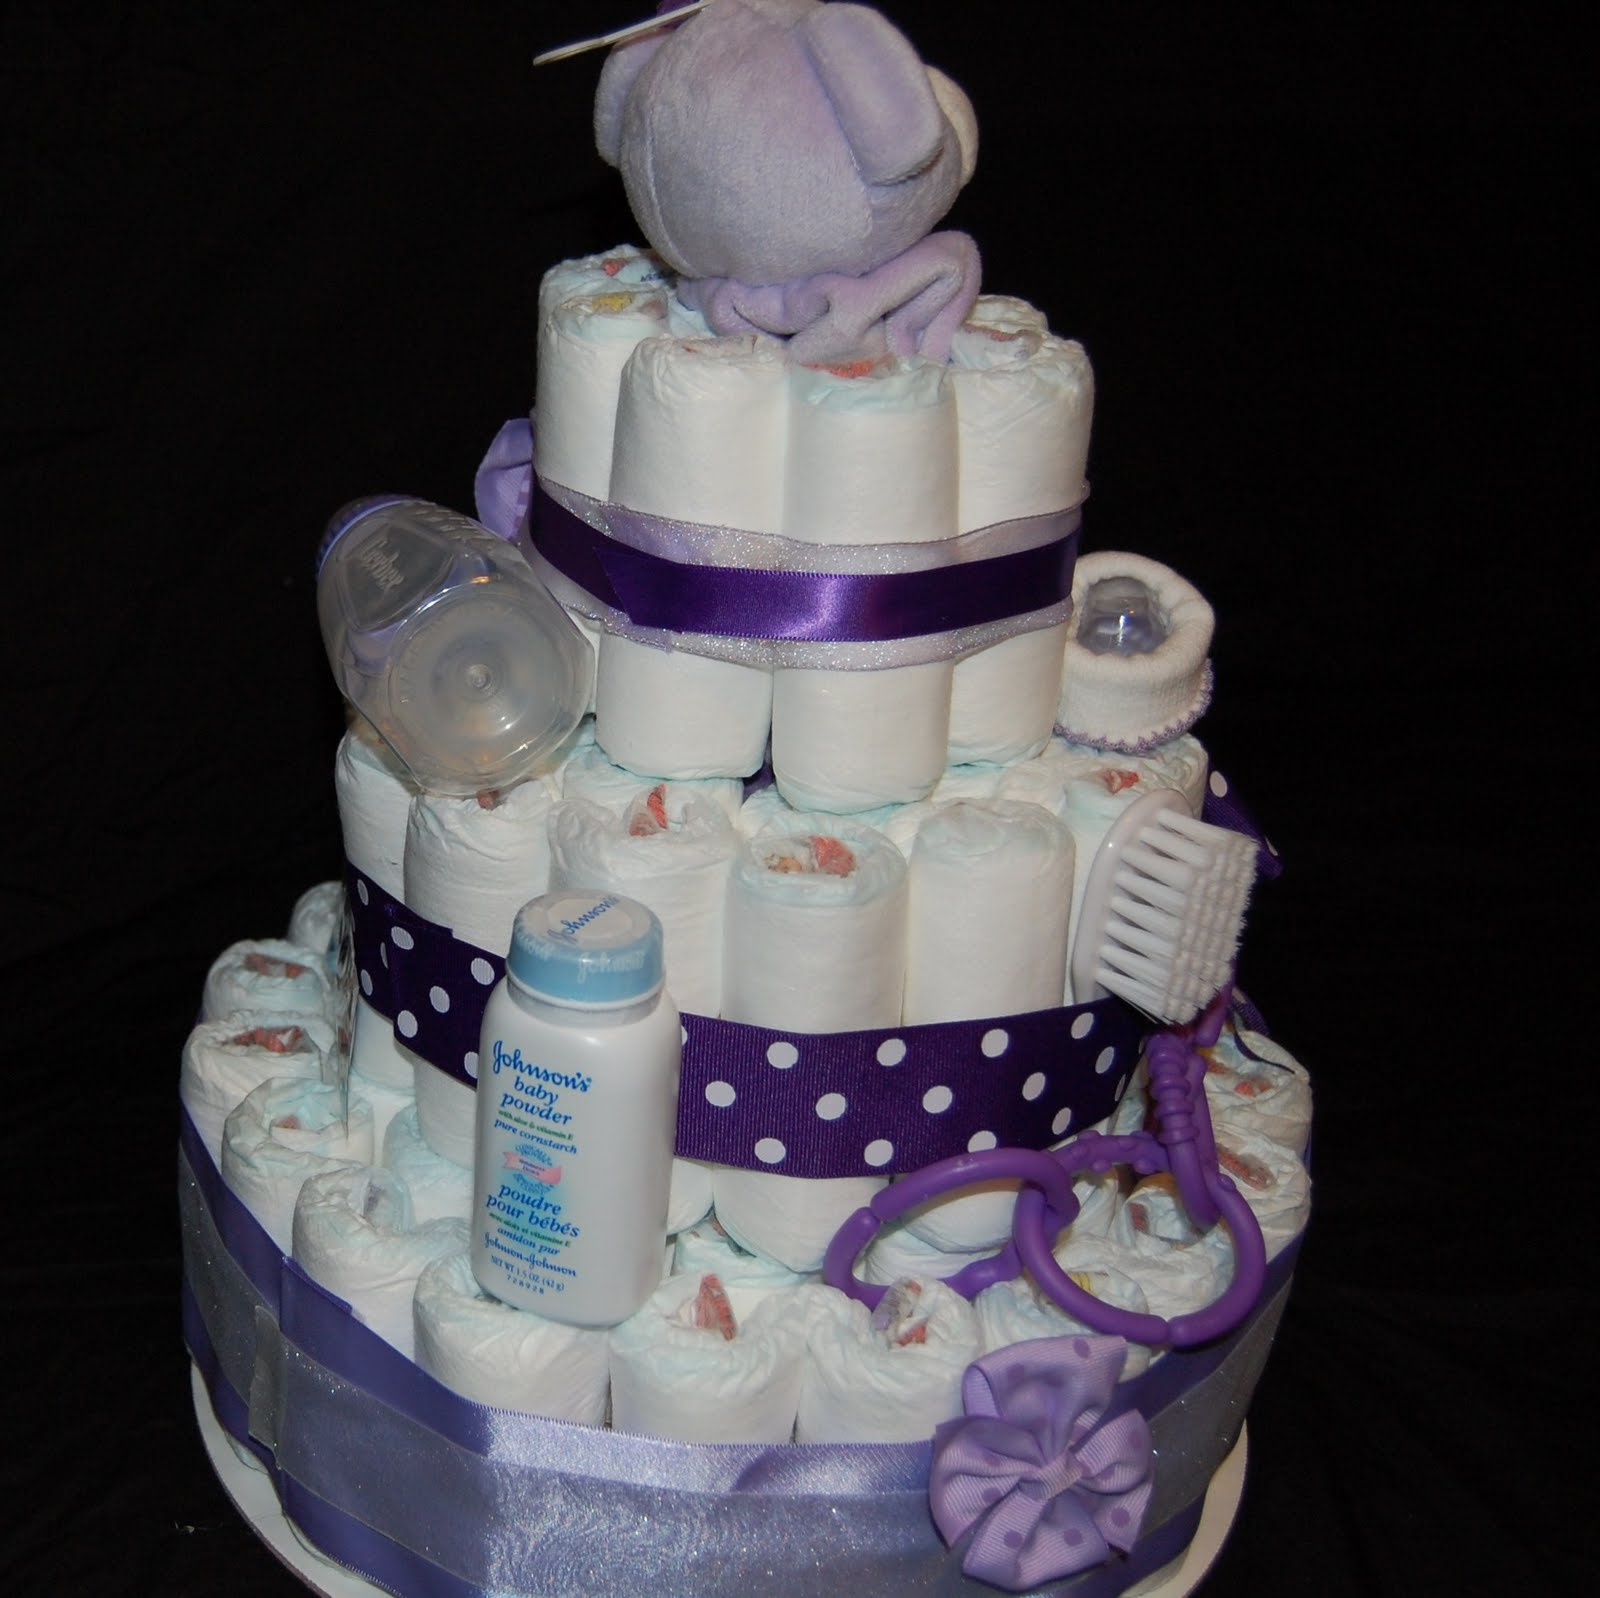 How To Make Baby Shower Diaper Cake: Crafting With Tammy: Diaper Cake